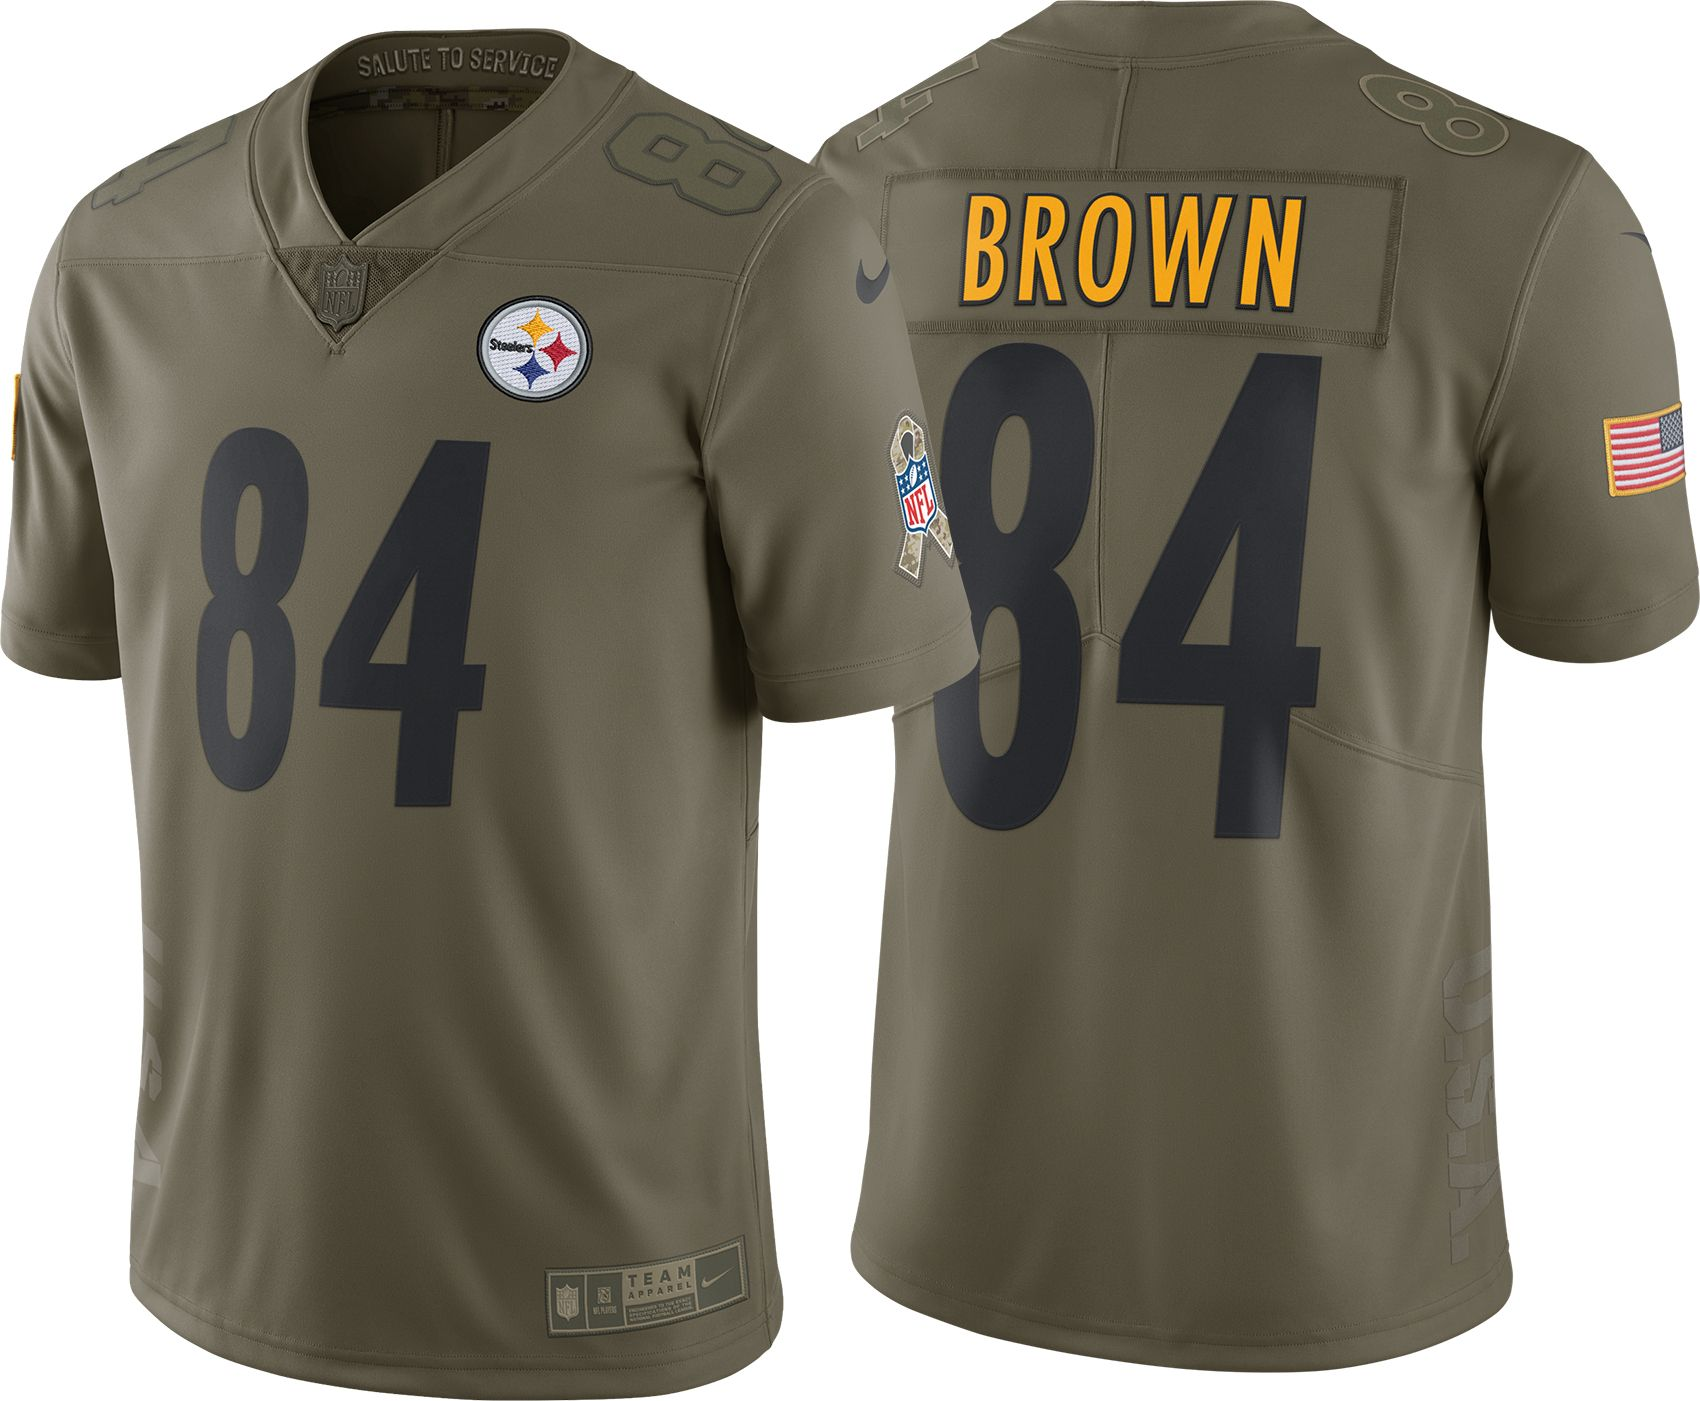 antonio brown 84 steelers jersey